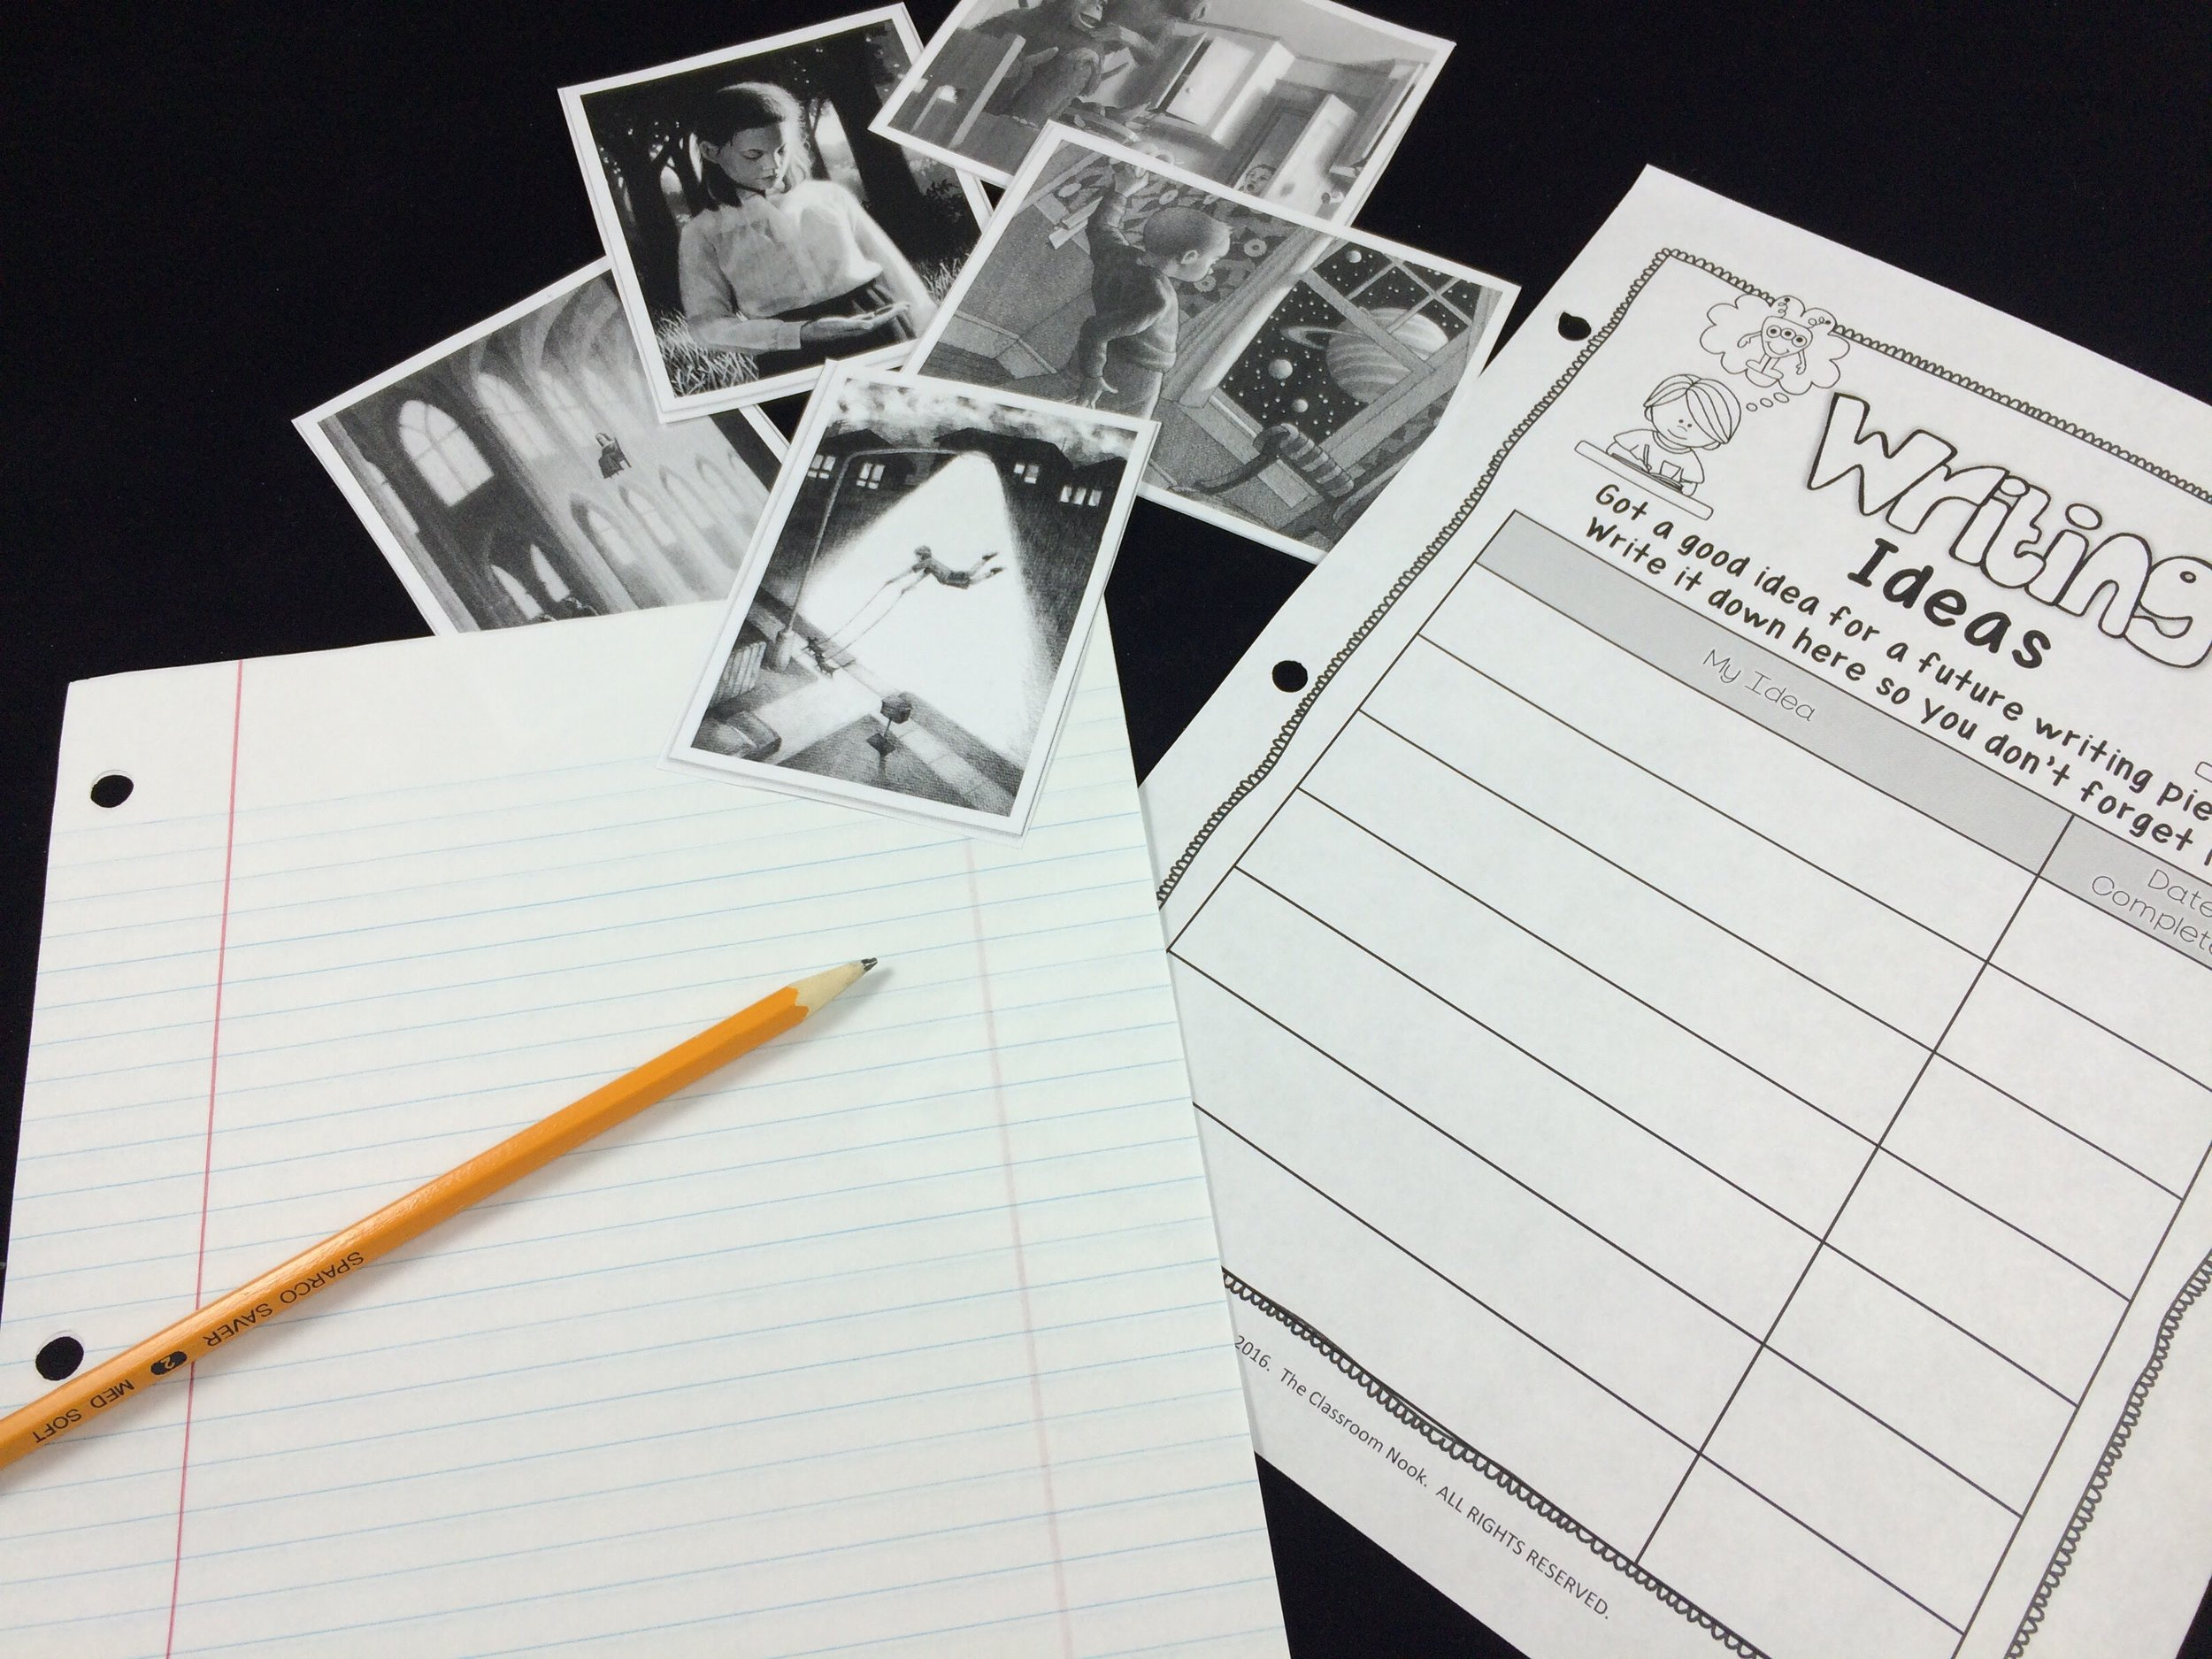 Students can keep track of their writing ideas inside their writers notebook. When they are ready to start a new writing piece, they can refer to their ideas list.